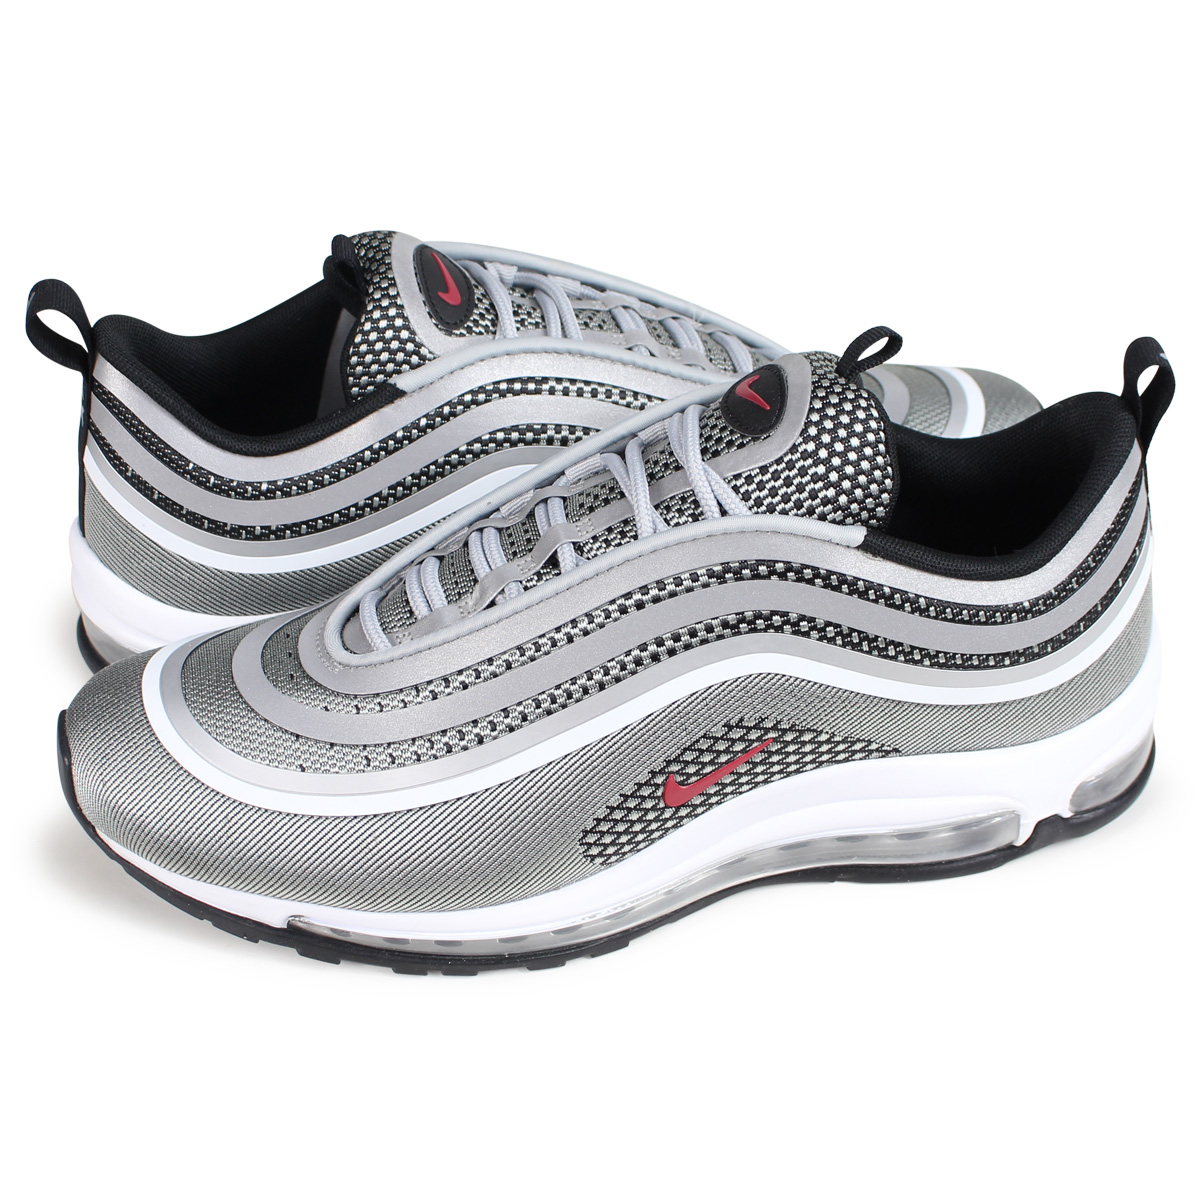 super popular 1318e ac378 NIKE AIR MAX 97 ULTRA 17 Kie Ney AMAX 97 ultra sneakers men 918,356-003  silver [load planned Shinnyu load in reservation product 10/22 containing]